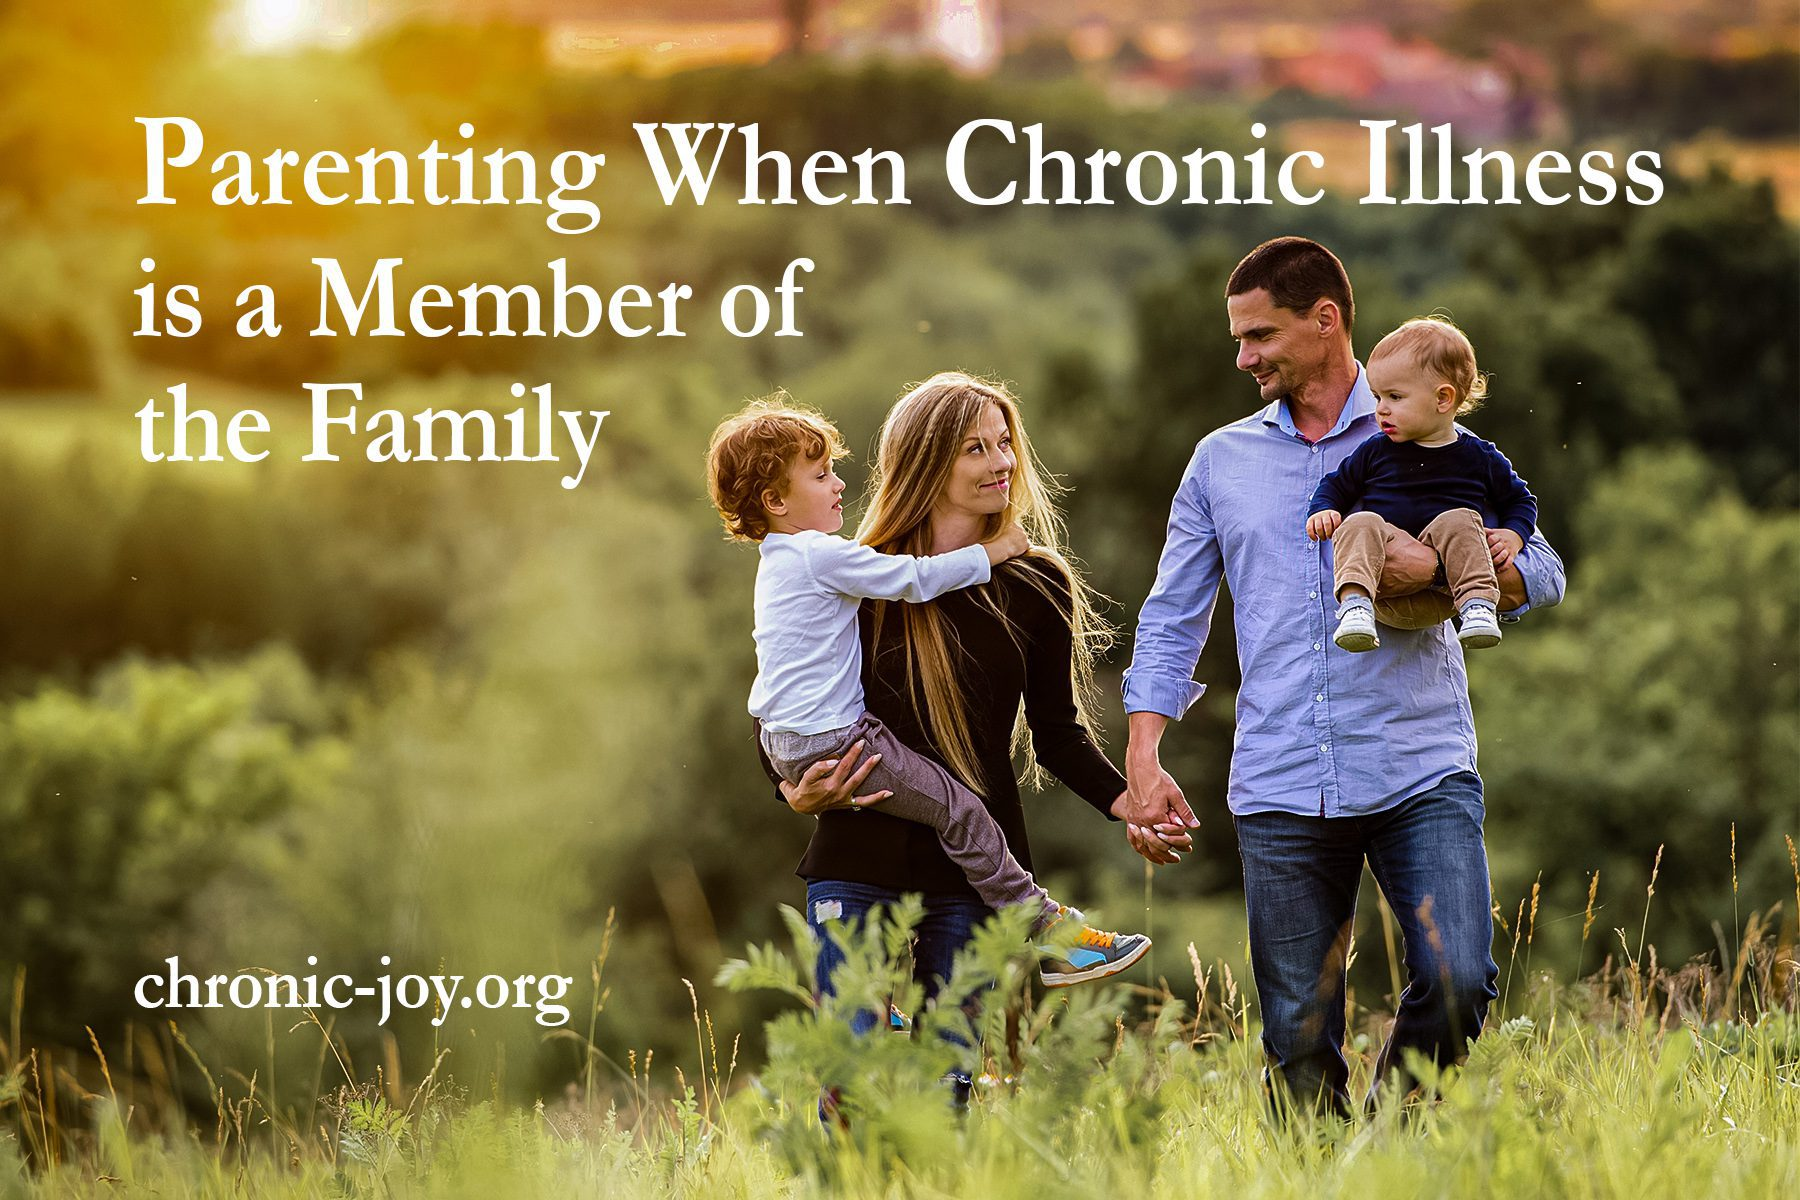 Parenting When Chronic Illness is a Member of the Family